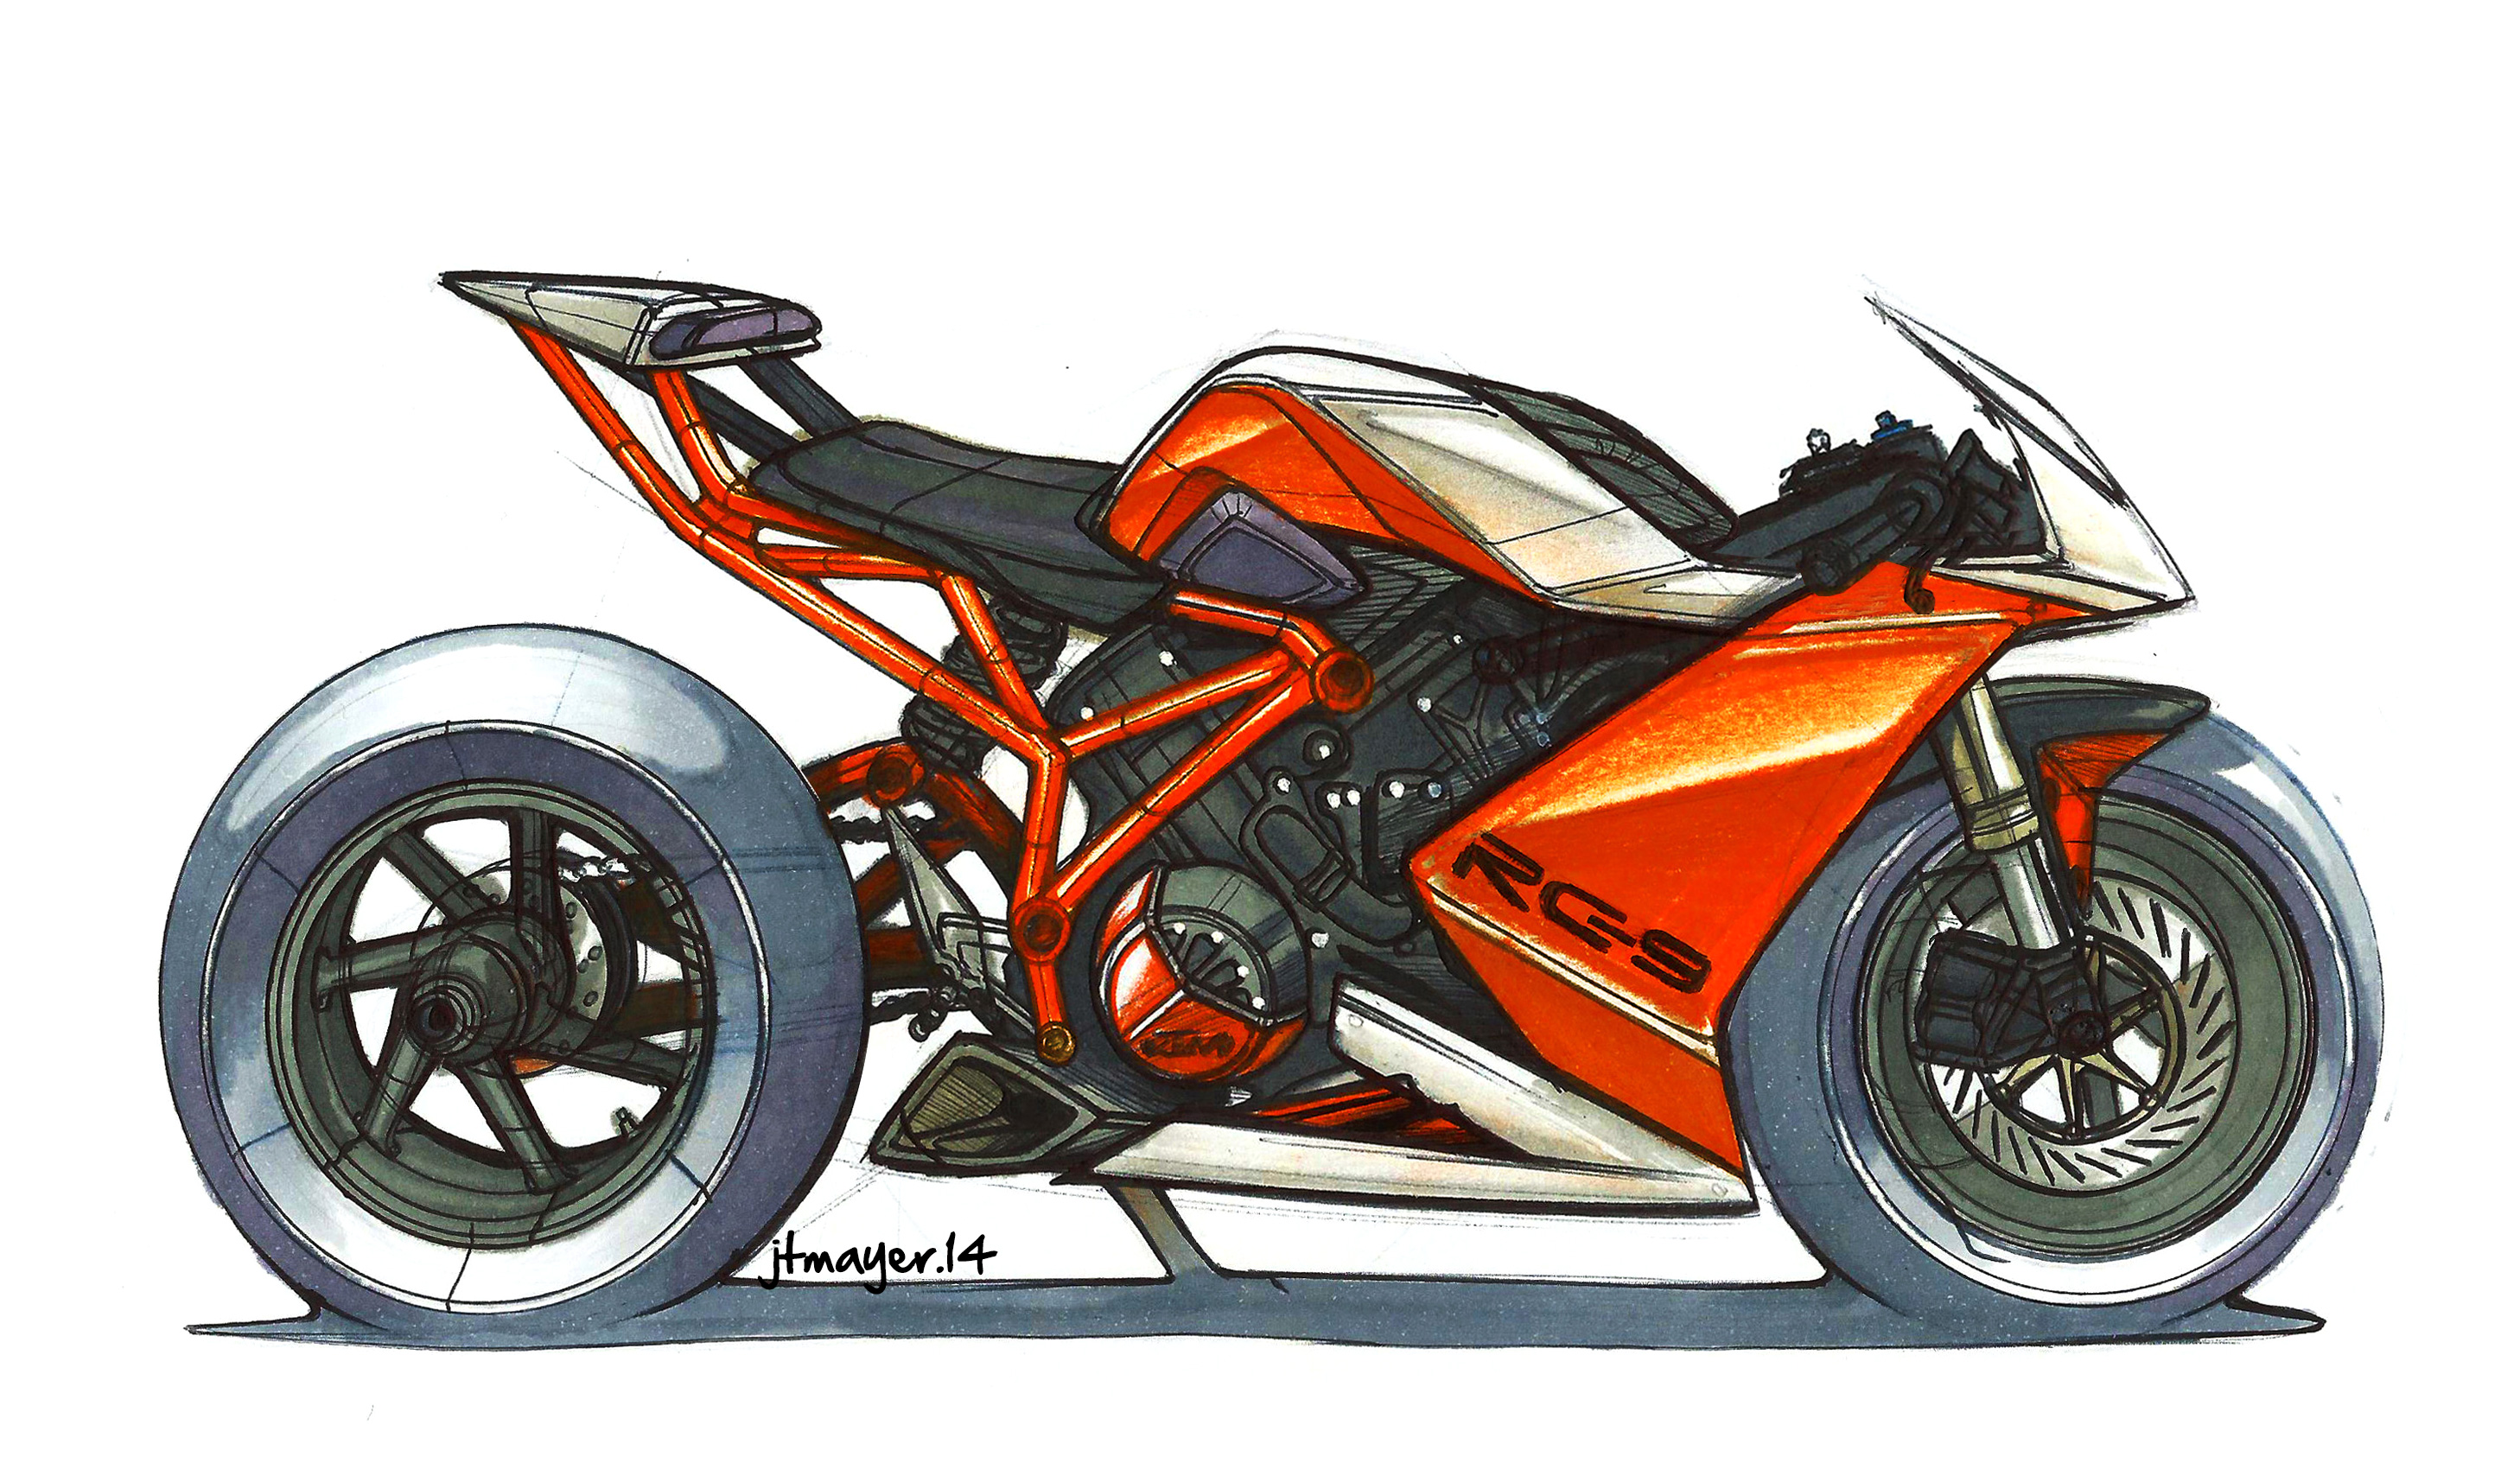 Drawn bike ktm #11